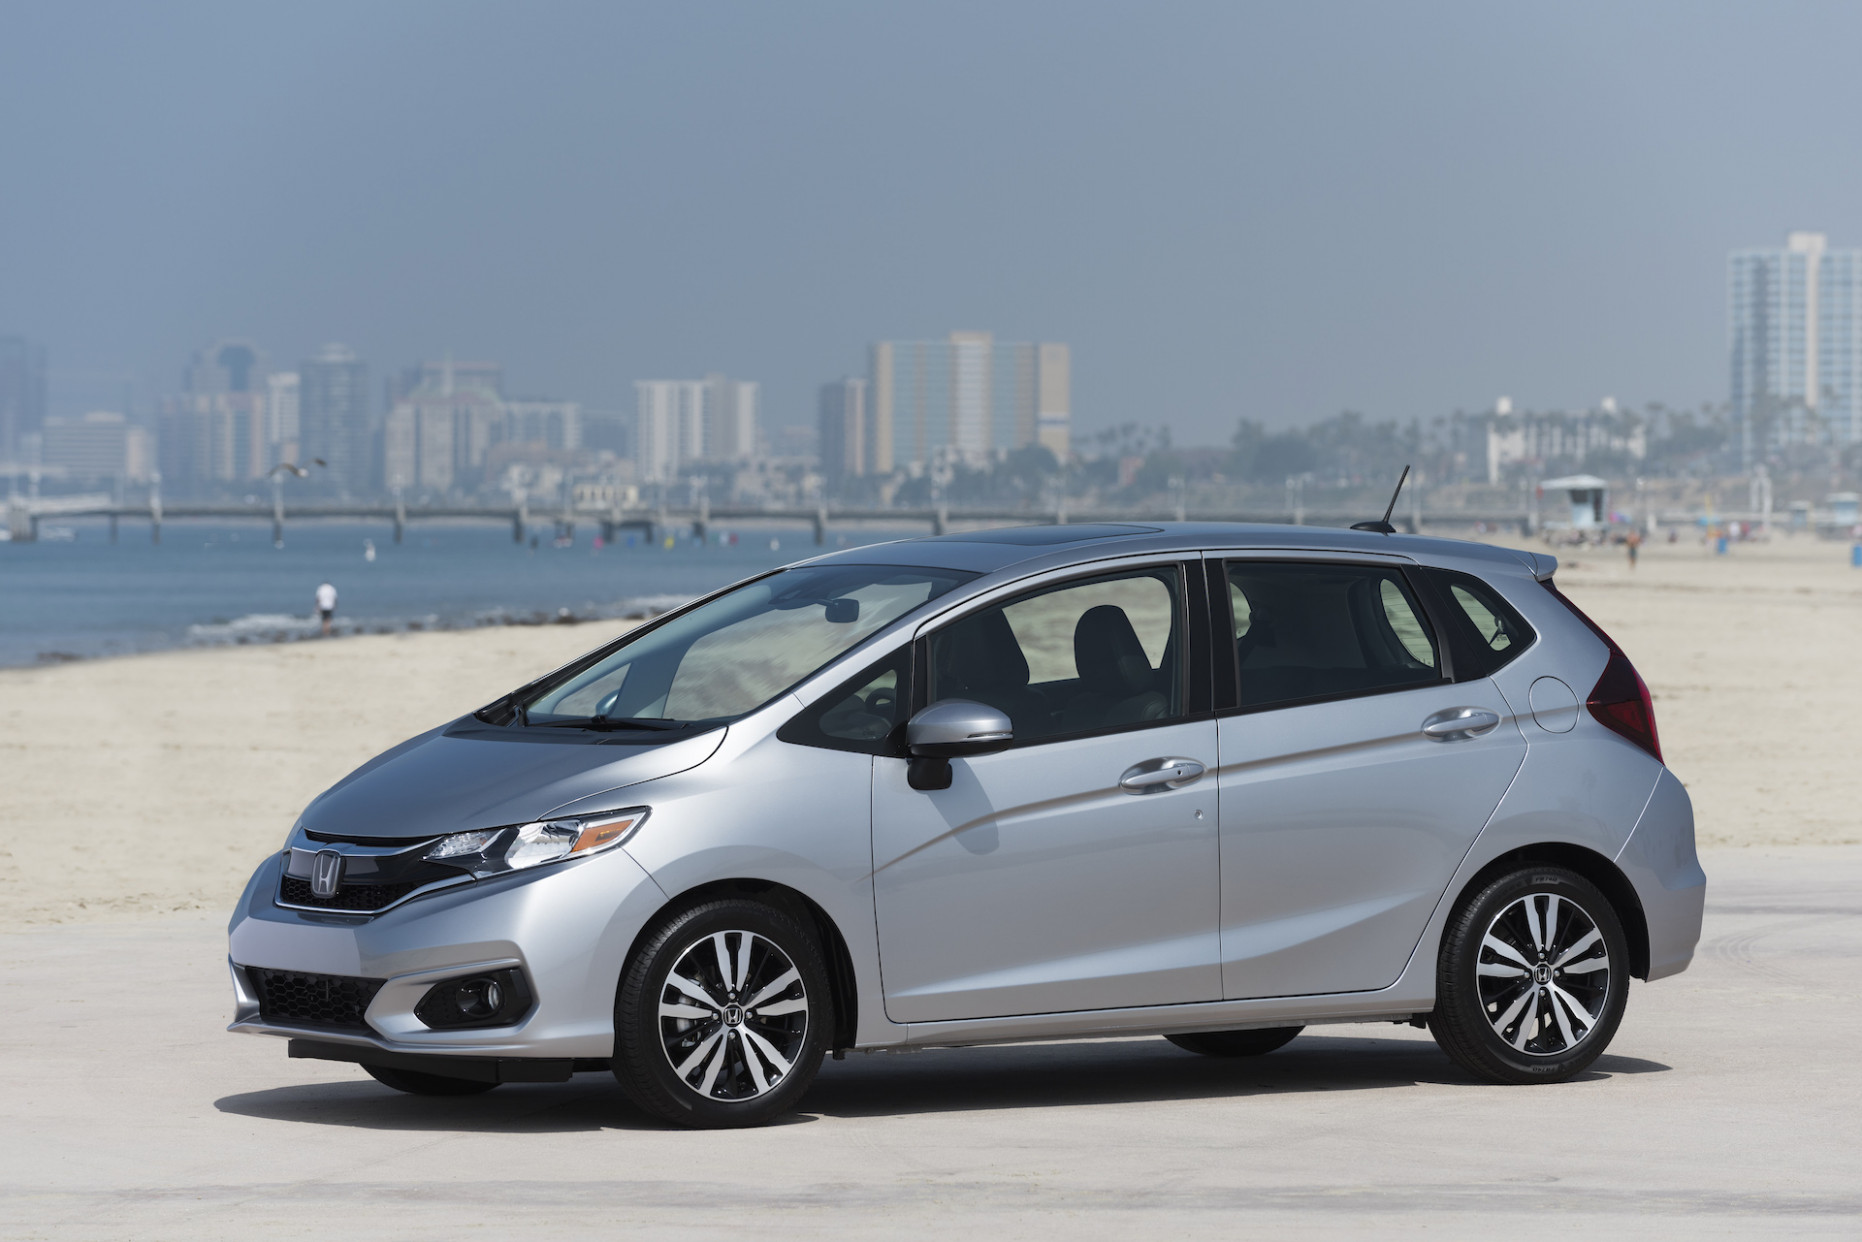 7 Honda Fit Review, Ratings, Specs, Prices, and Photos - The ..